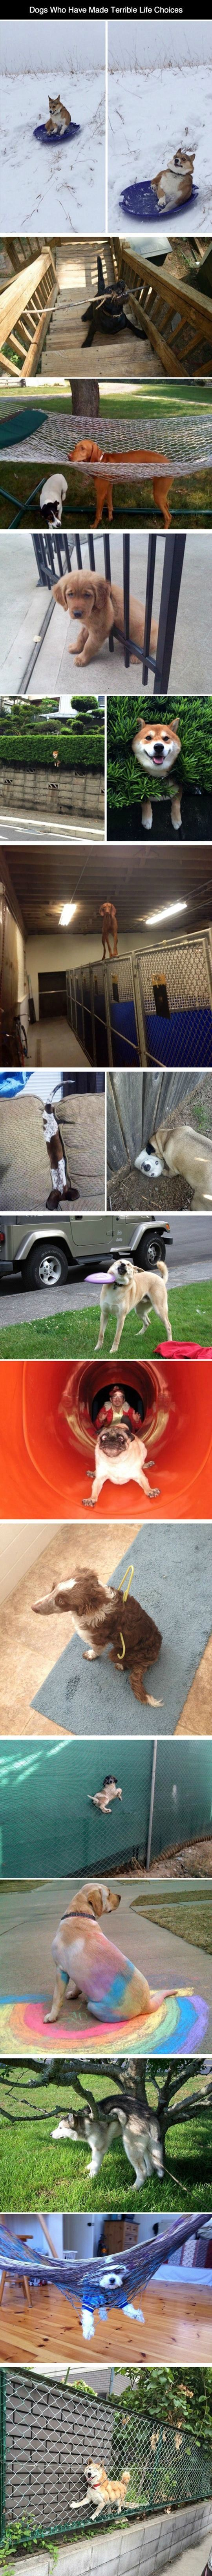 best puppies images on pinterest funny animals funny dogs and pets